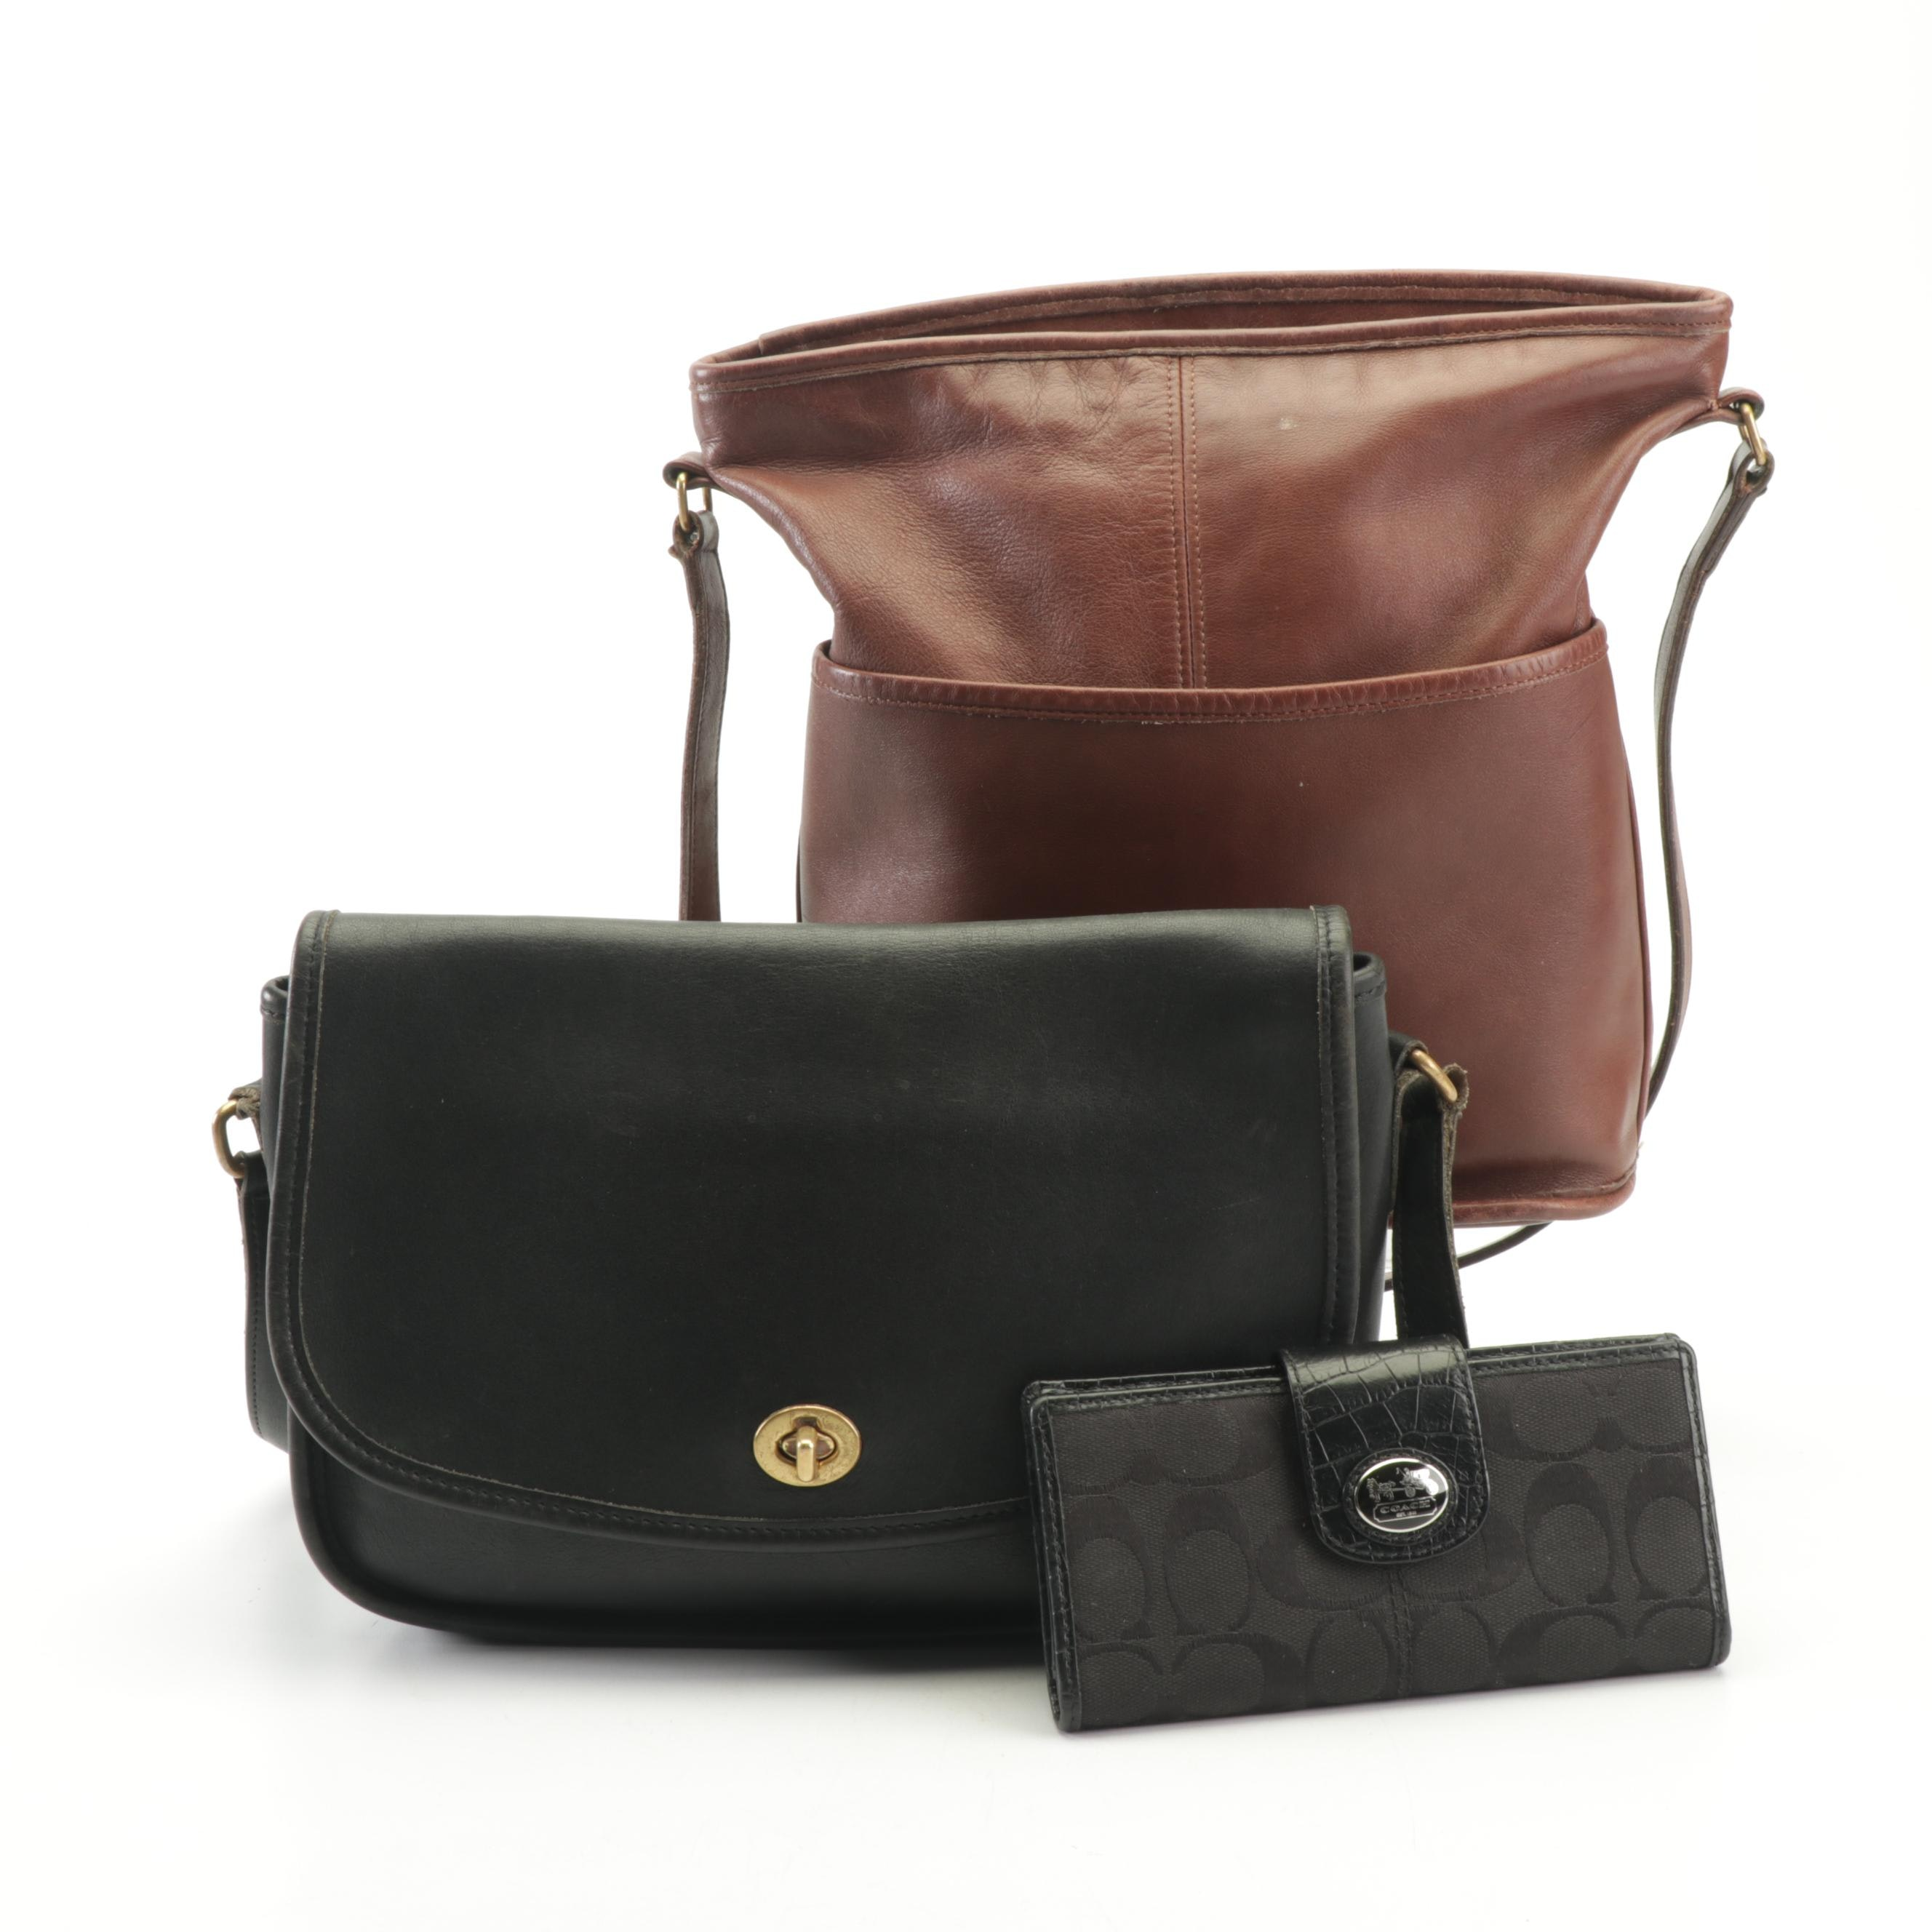 Coach Black Leather City Bag, Brown Leather Shoulder Bag and Signature Wallet